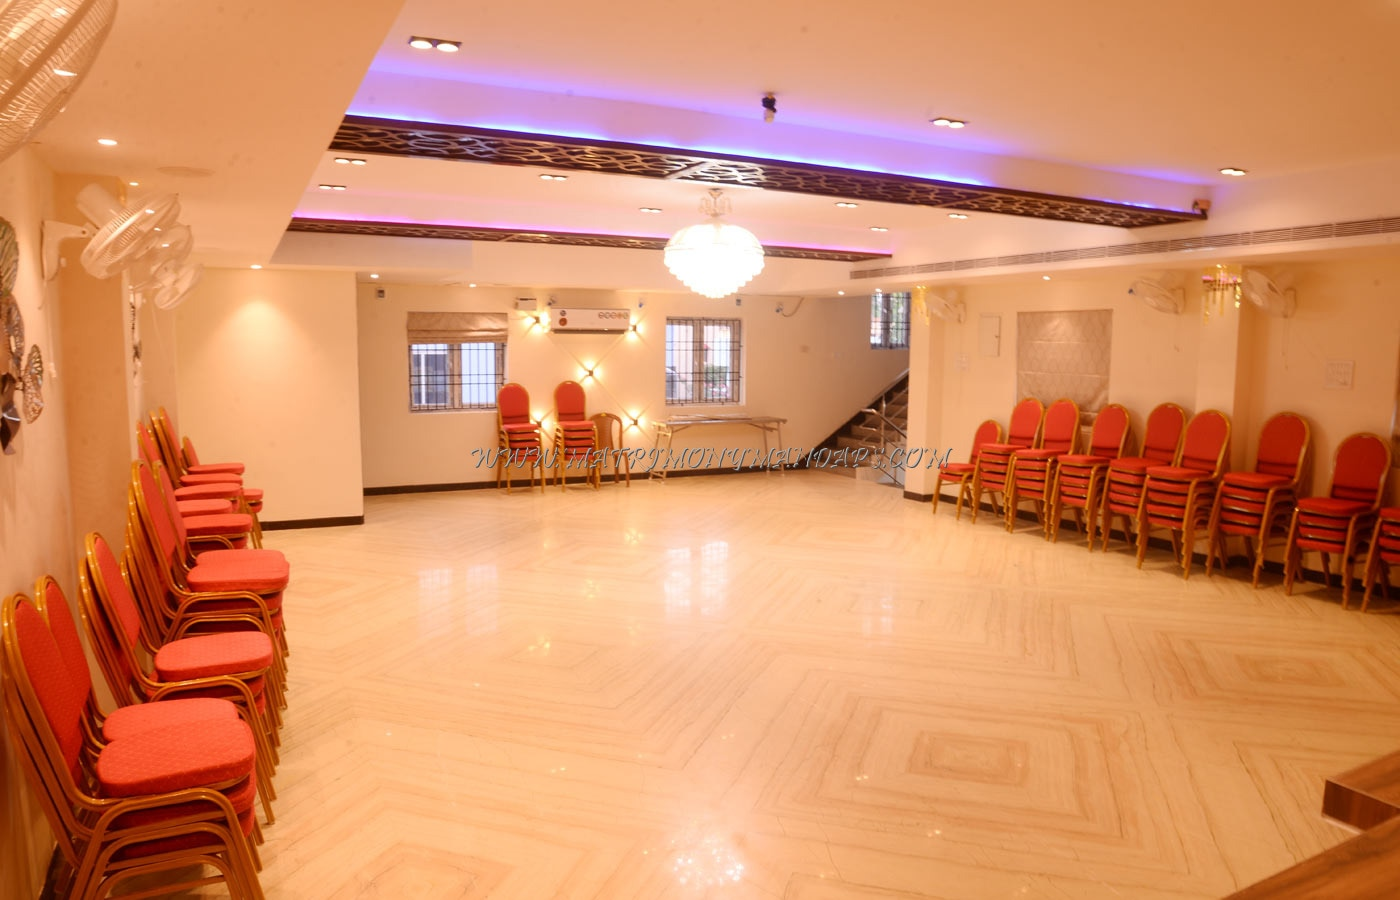 Find the availability of the Anandavalli Party Hall (A/C) in Madipakkam, Chennai and avail special offers